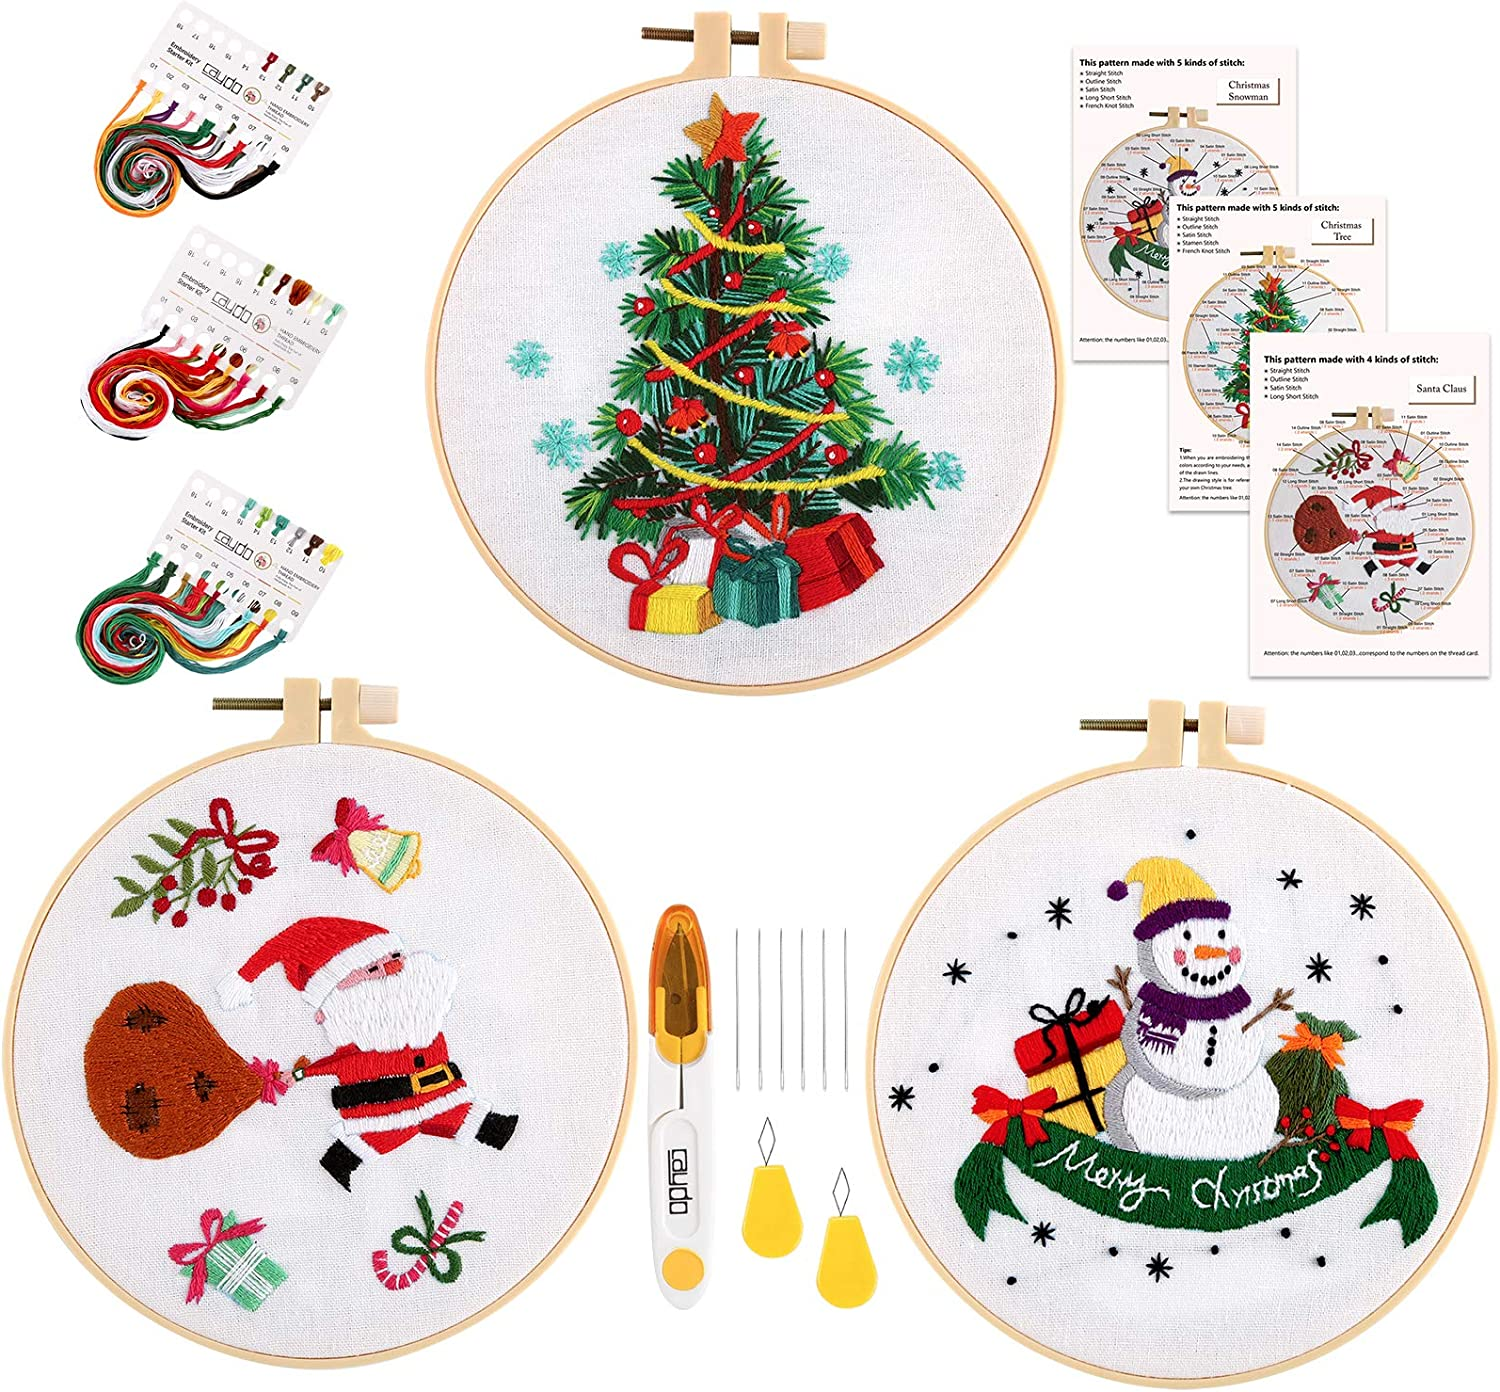 Tools and Instructions Caydo 3 Sets Christmas Embroidery Starter Kit with Pattern Include 3 Embroidery Clothes with Christmas Themed Pattern Color Threads 3 Plastic Embroidery Hoops